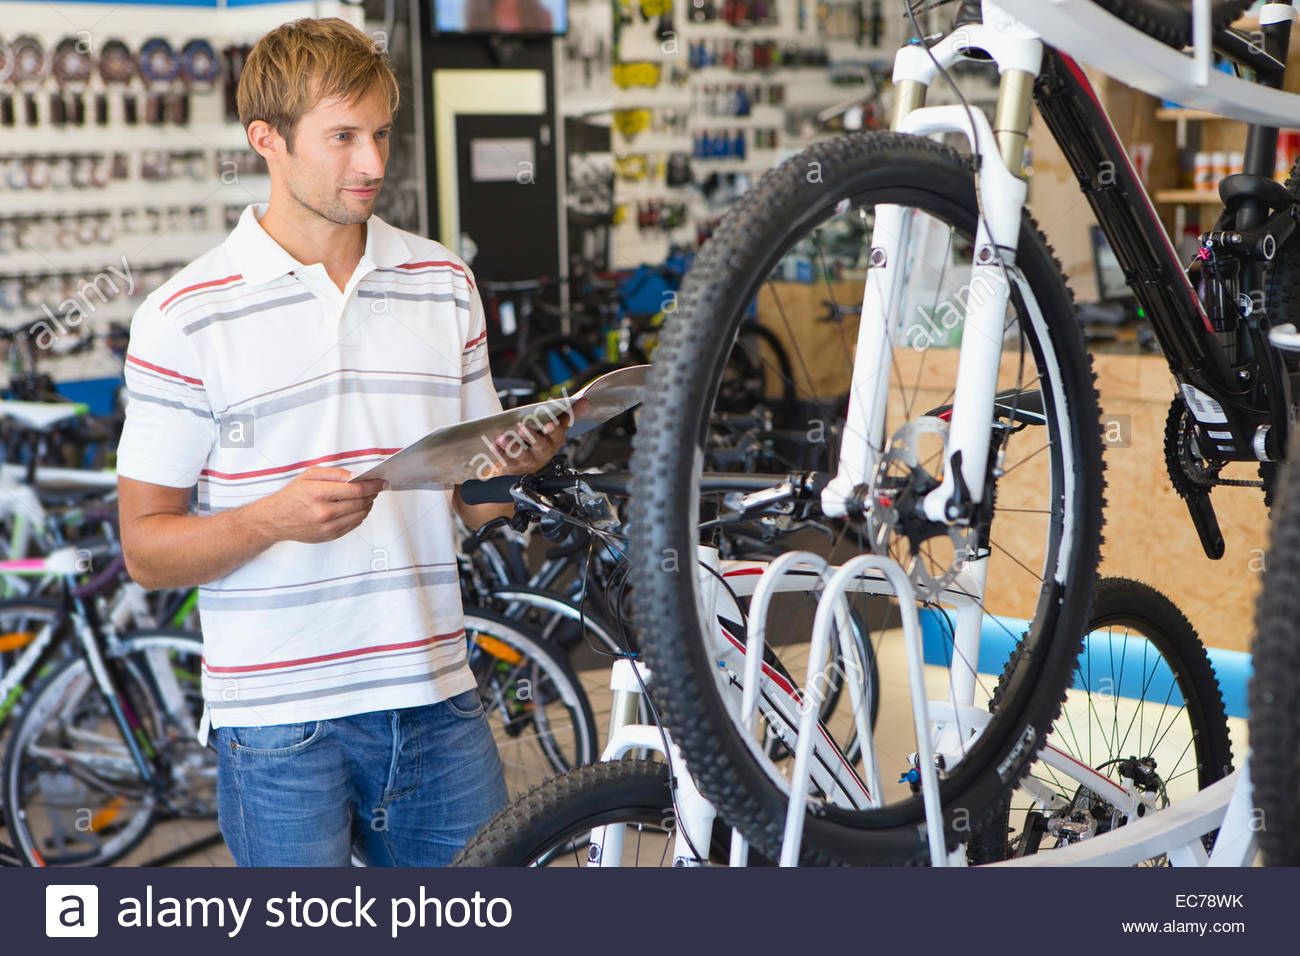 Man choosing a bicycle in shop - Stock Image